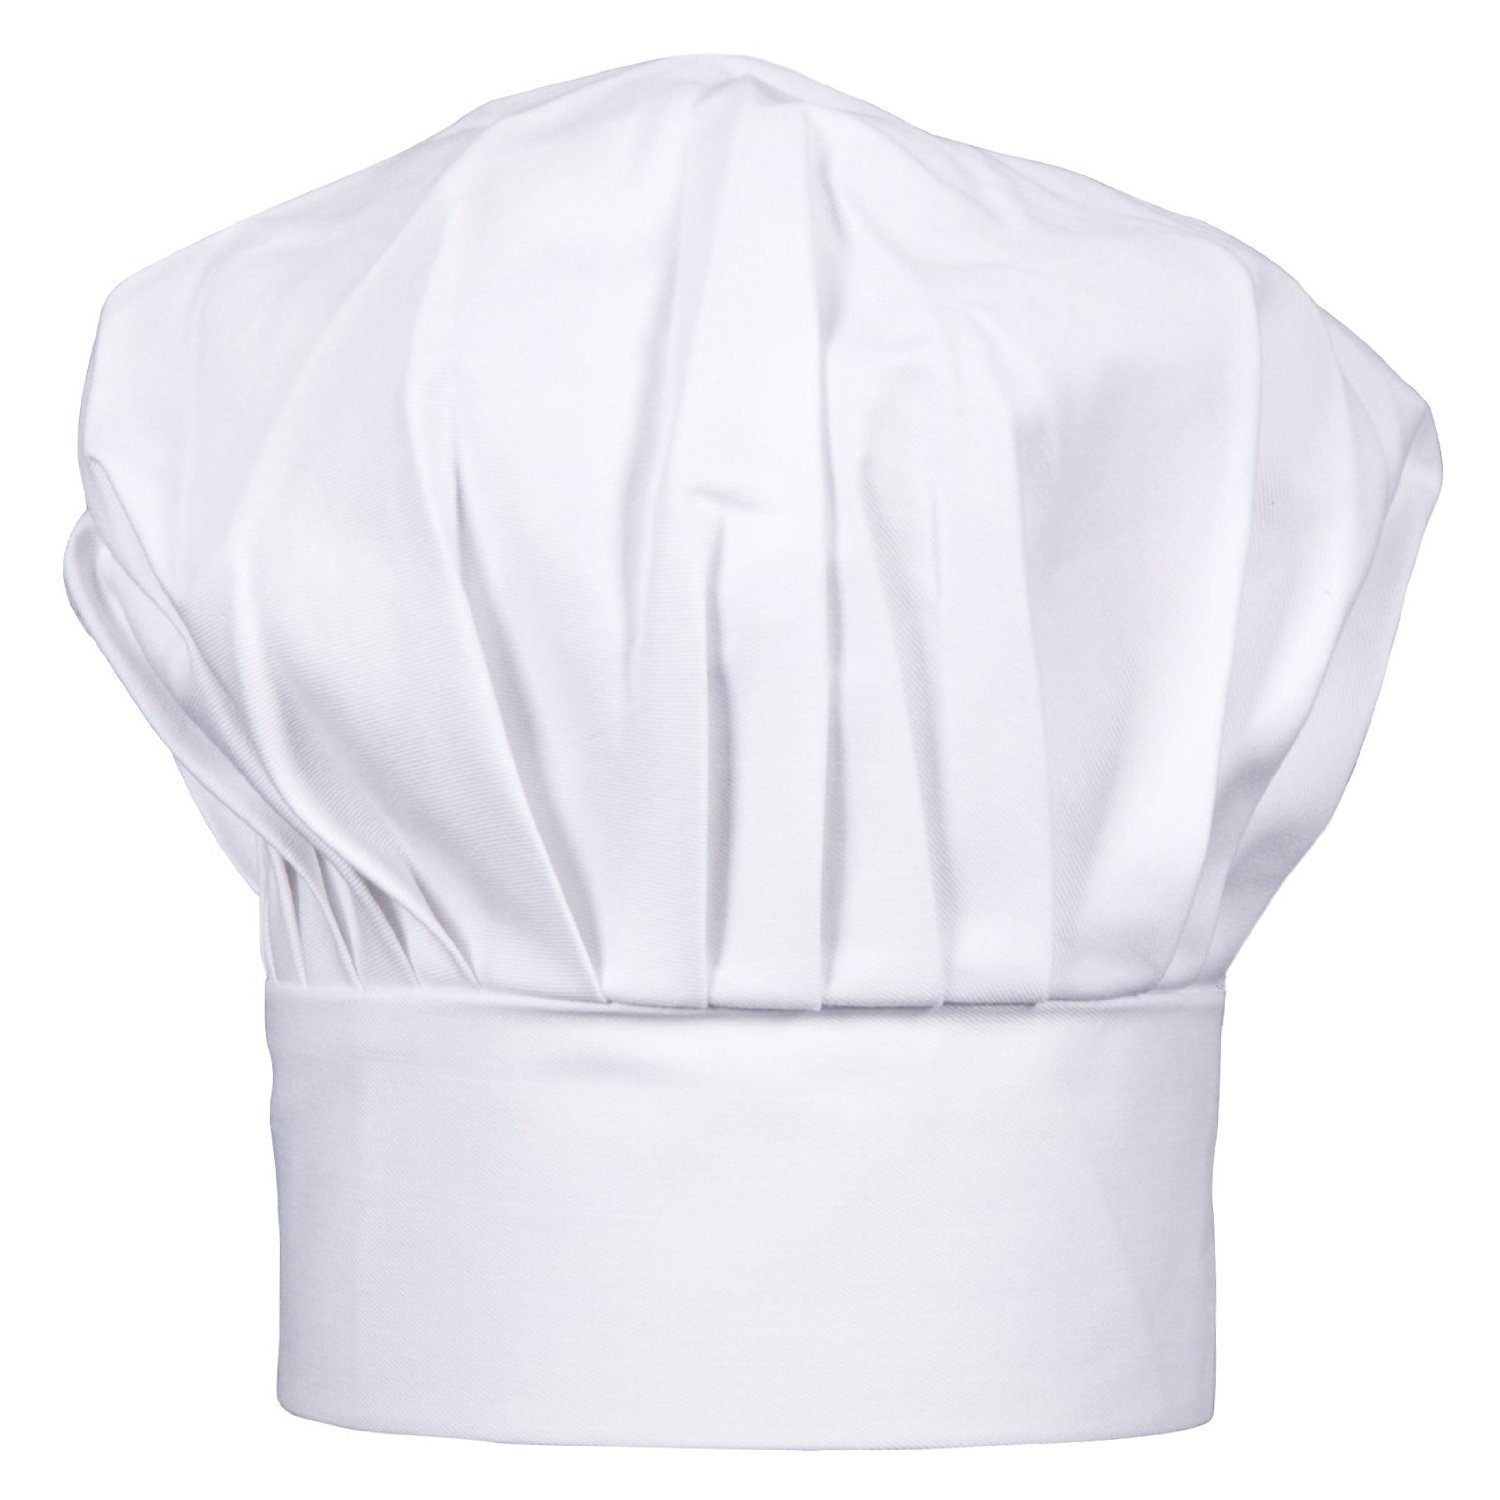 Chefskin Small White Kid Children Chef Set (Apron+hat) Lite Fabric Fits 2-8